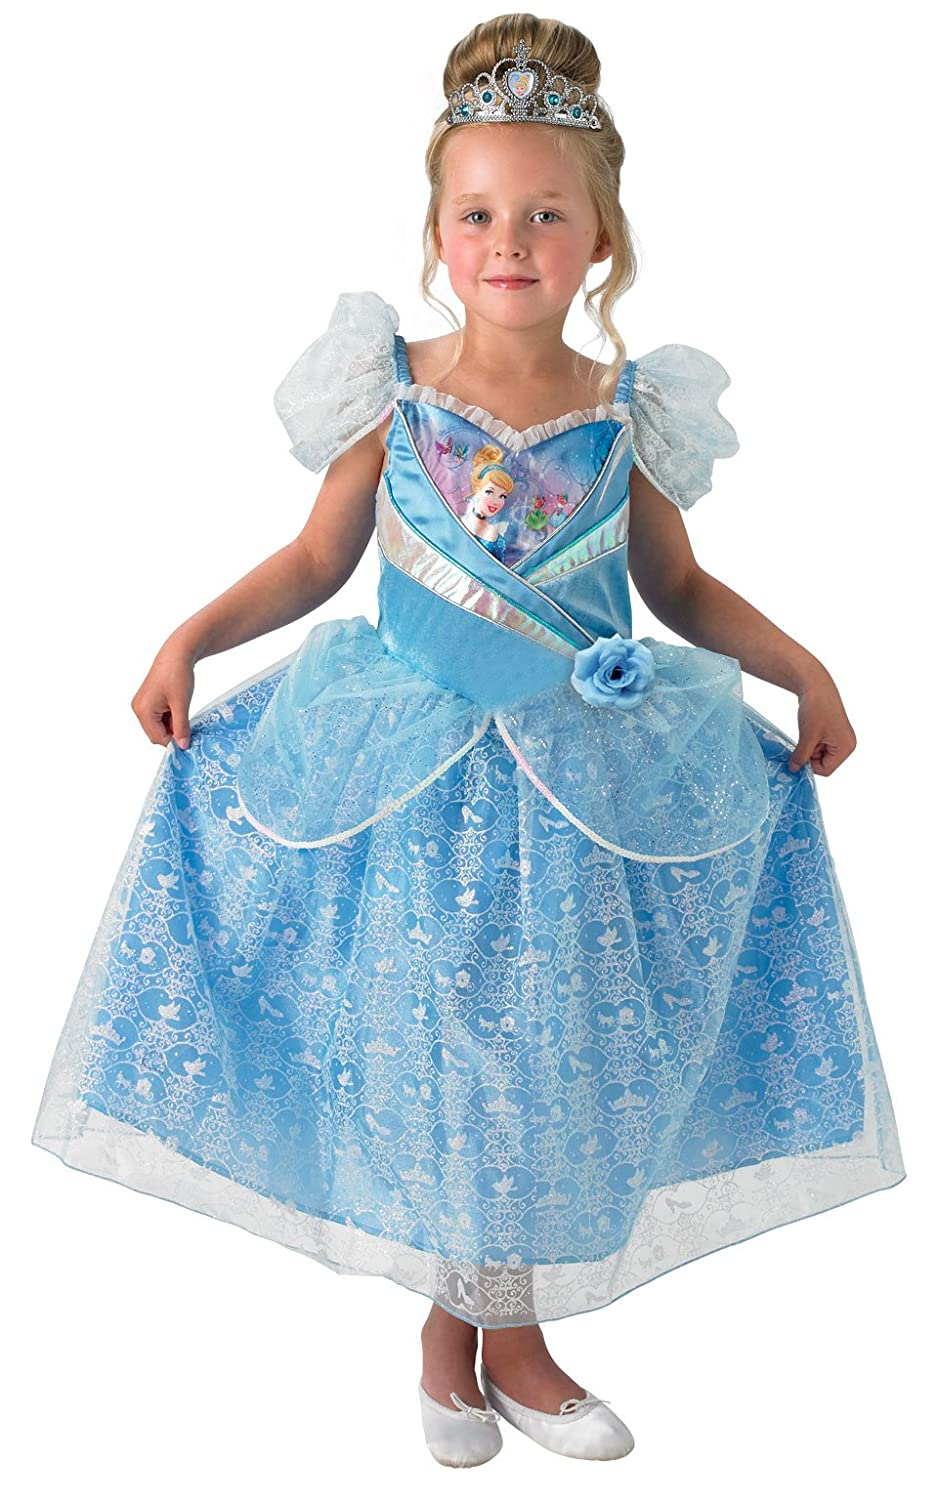 Rubieu0027s Official Shimmer Cinderella Children Costume - Small Amazon.co.uk Toys u0026 Games  sc 1 st  Amazon UK & Rubieu0027s Official Shimmer Cinderella Children Costume - Small ...